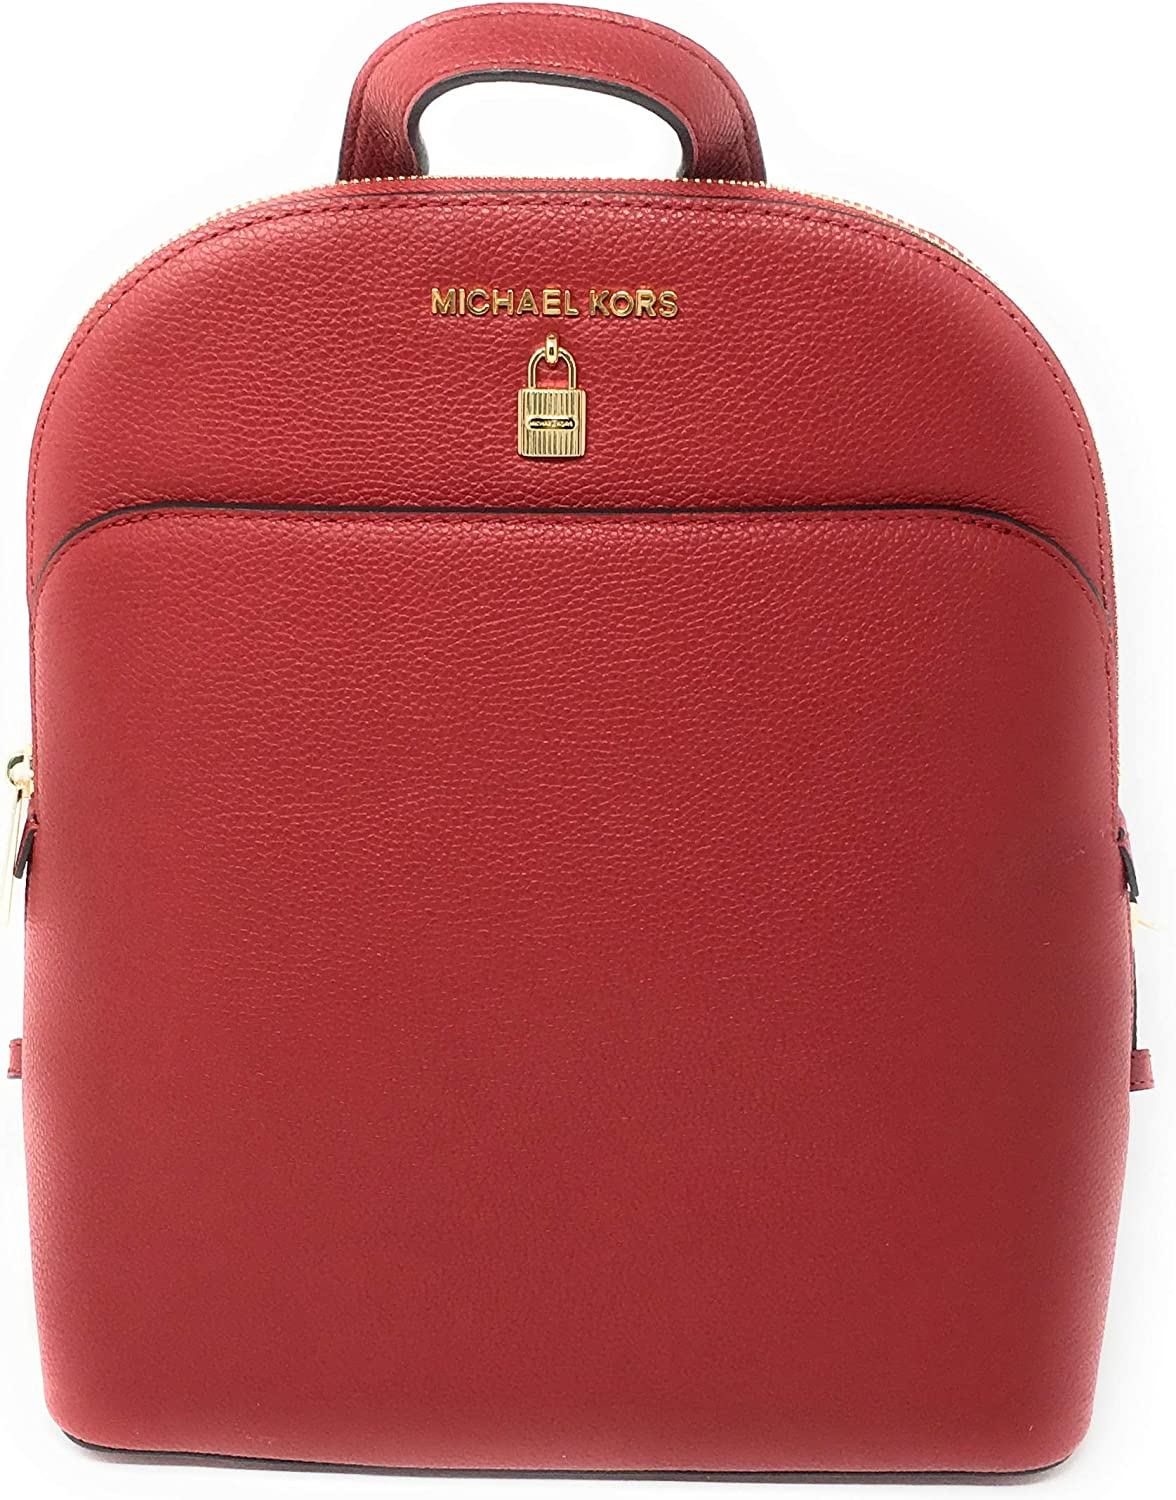 Michael Kors Women's Adele LG Backpack